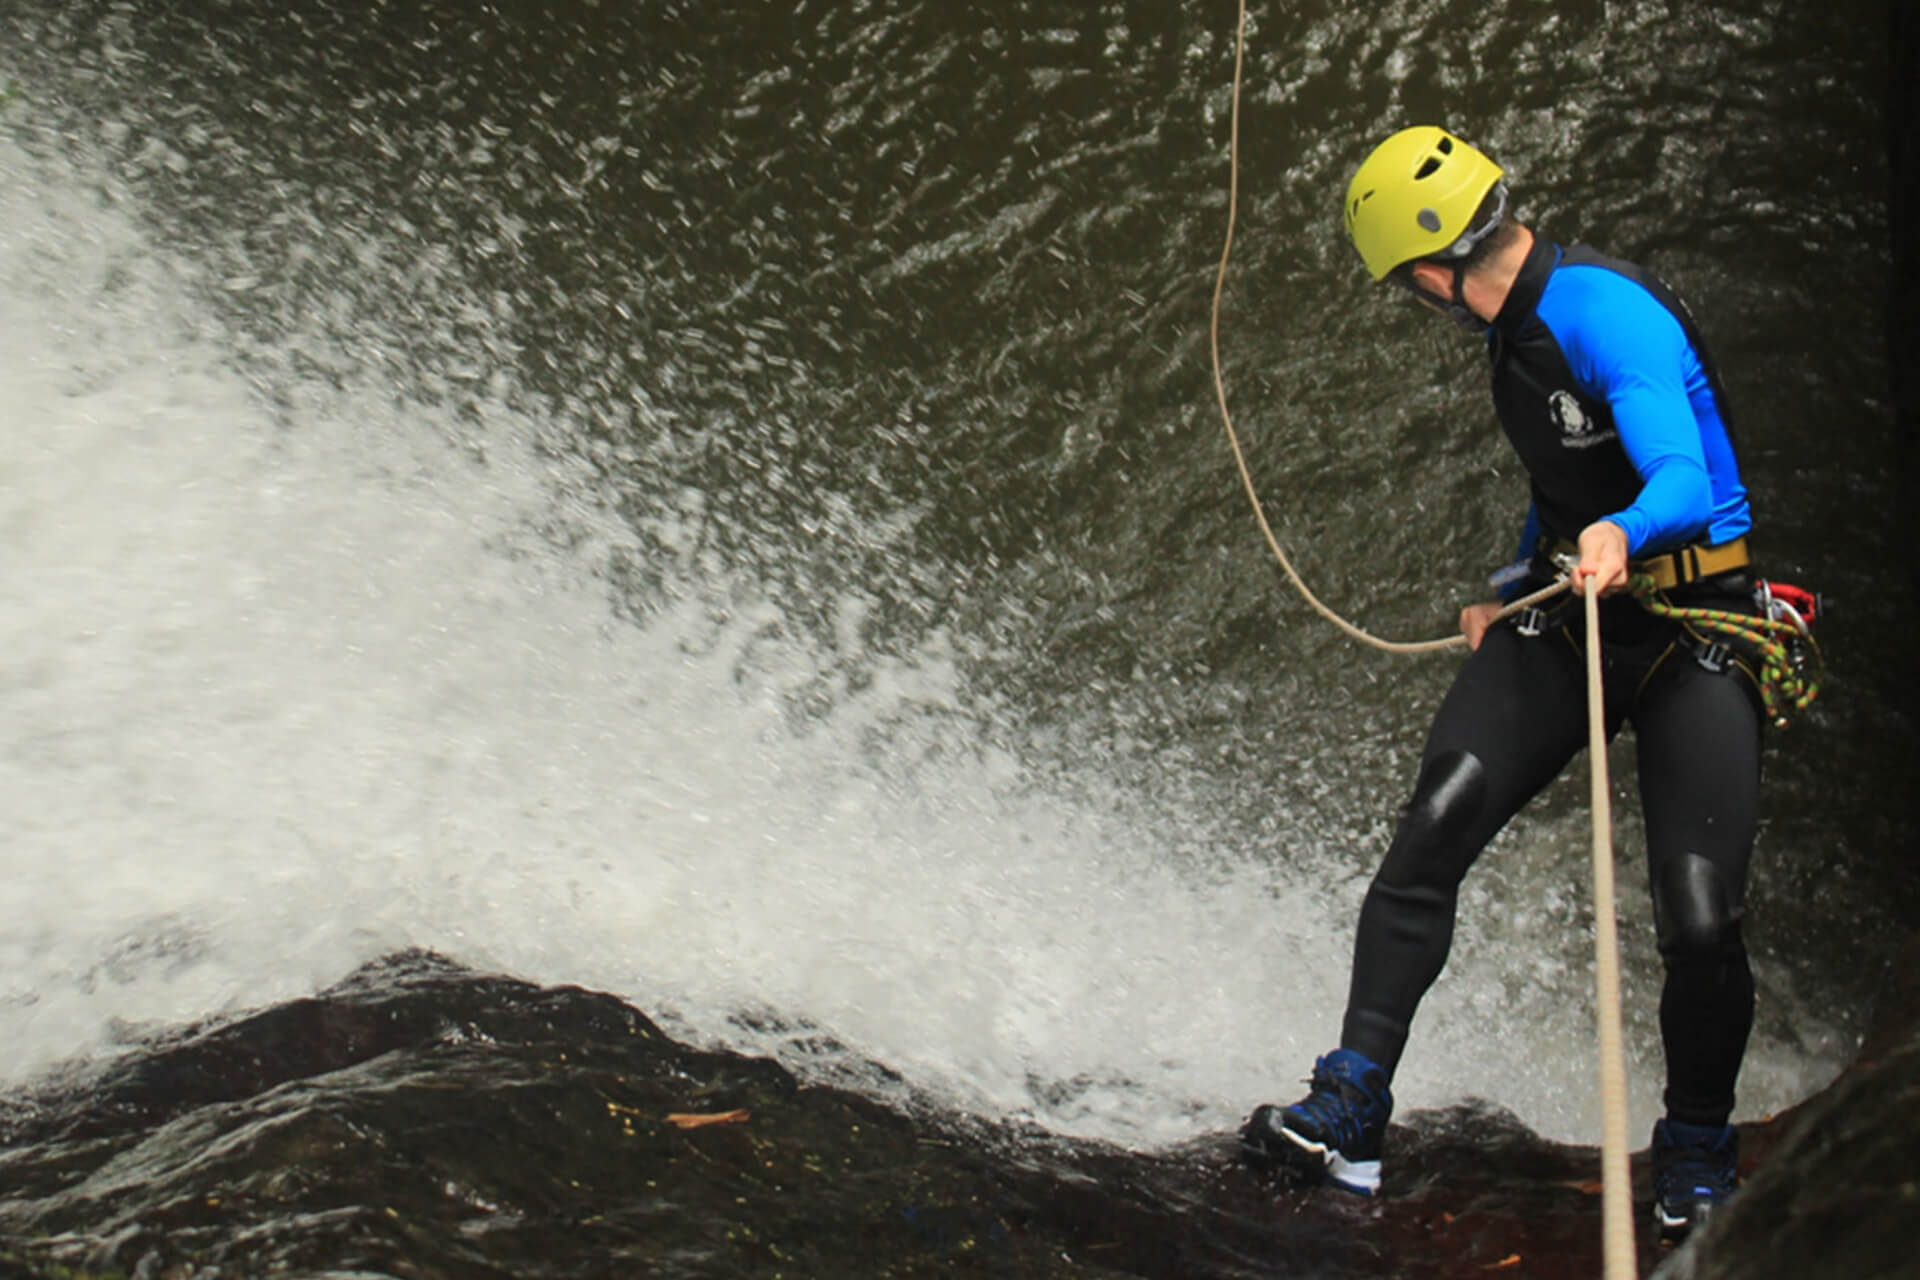 Canyoning at The Tukad Campuhan